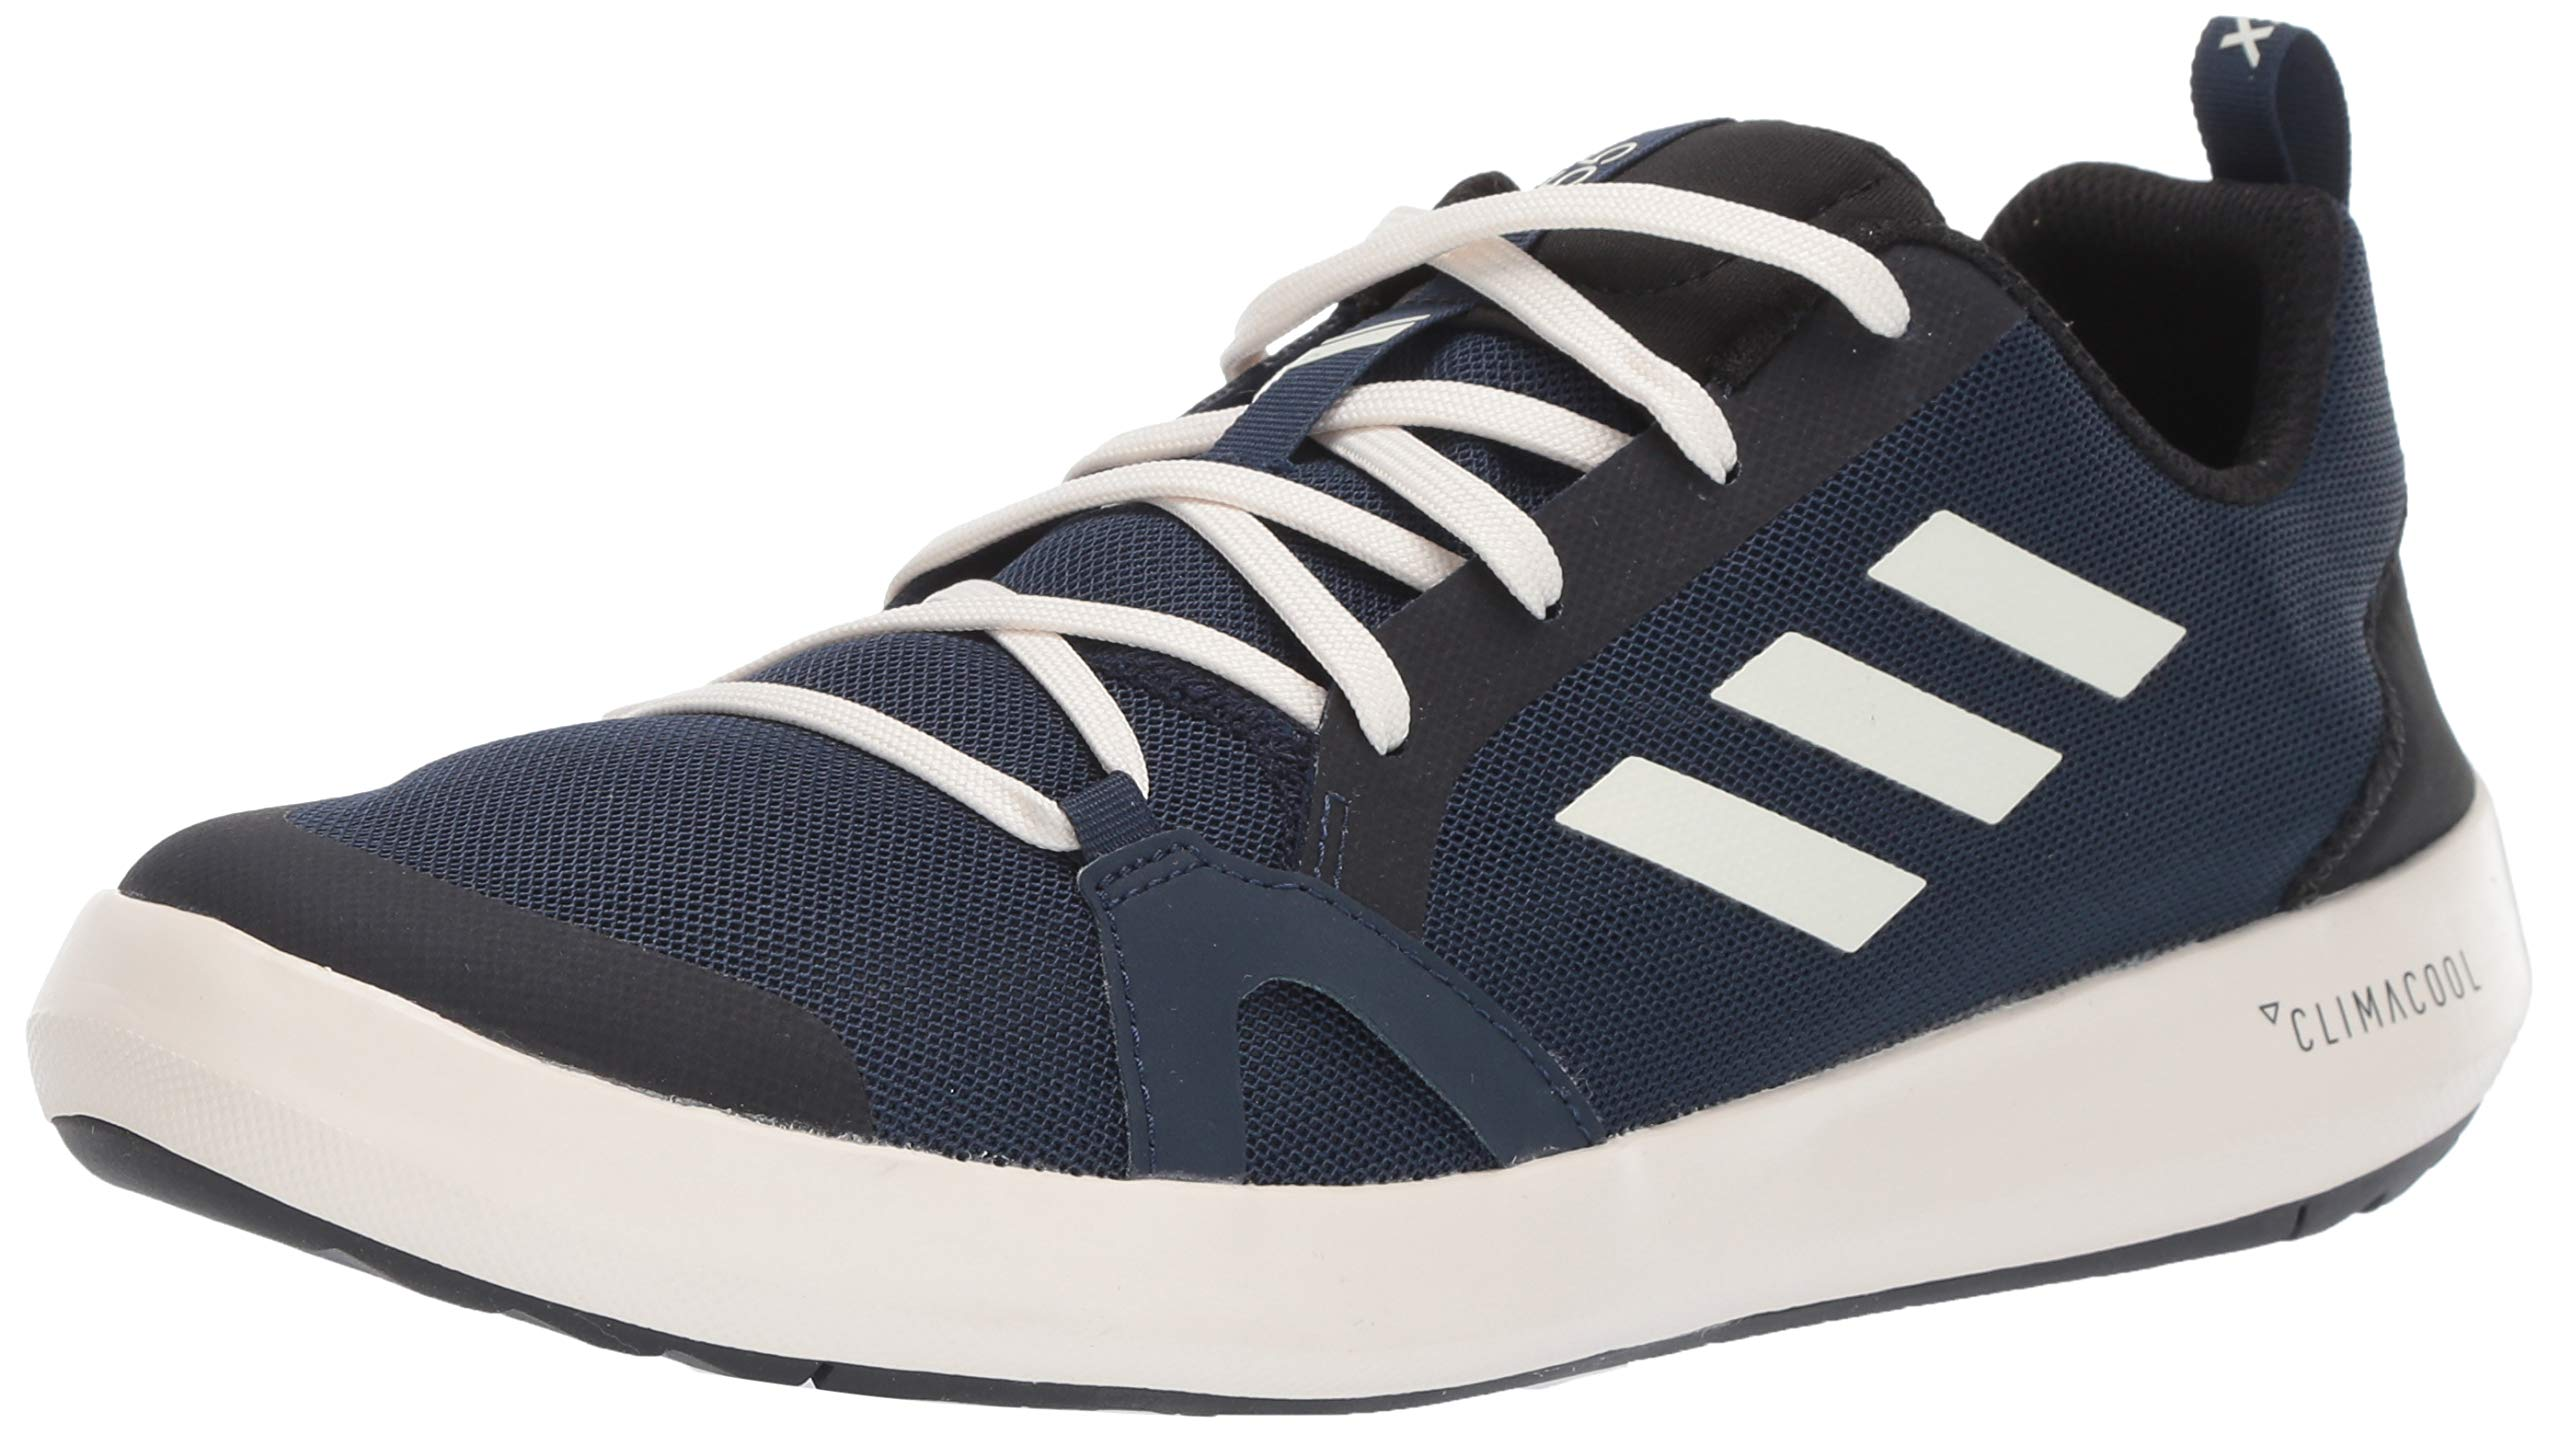 adidas Outdoor Men's Terrex Summer.RDY Boat Water Shoe, col Navy/chalk White/Black, 7 M US by adidas outdoor